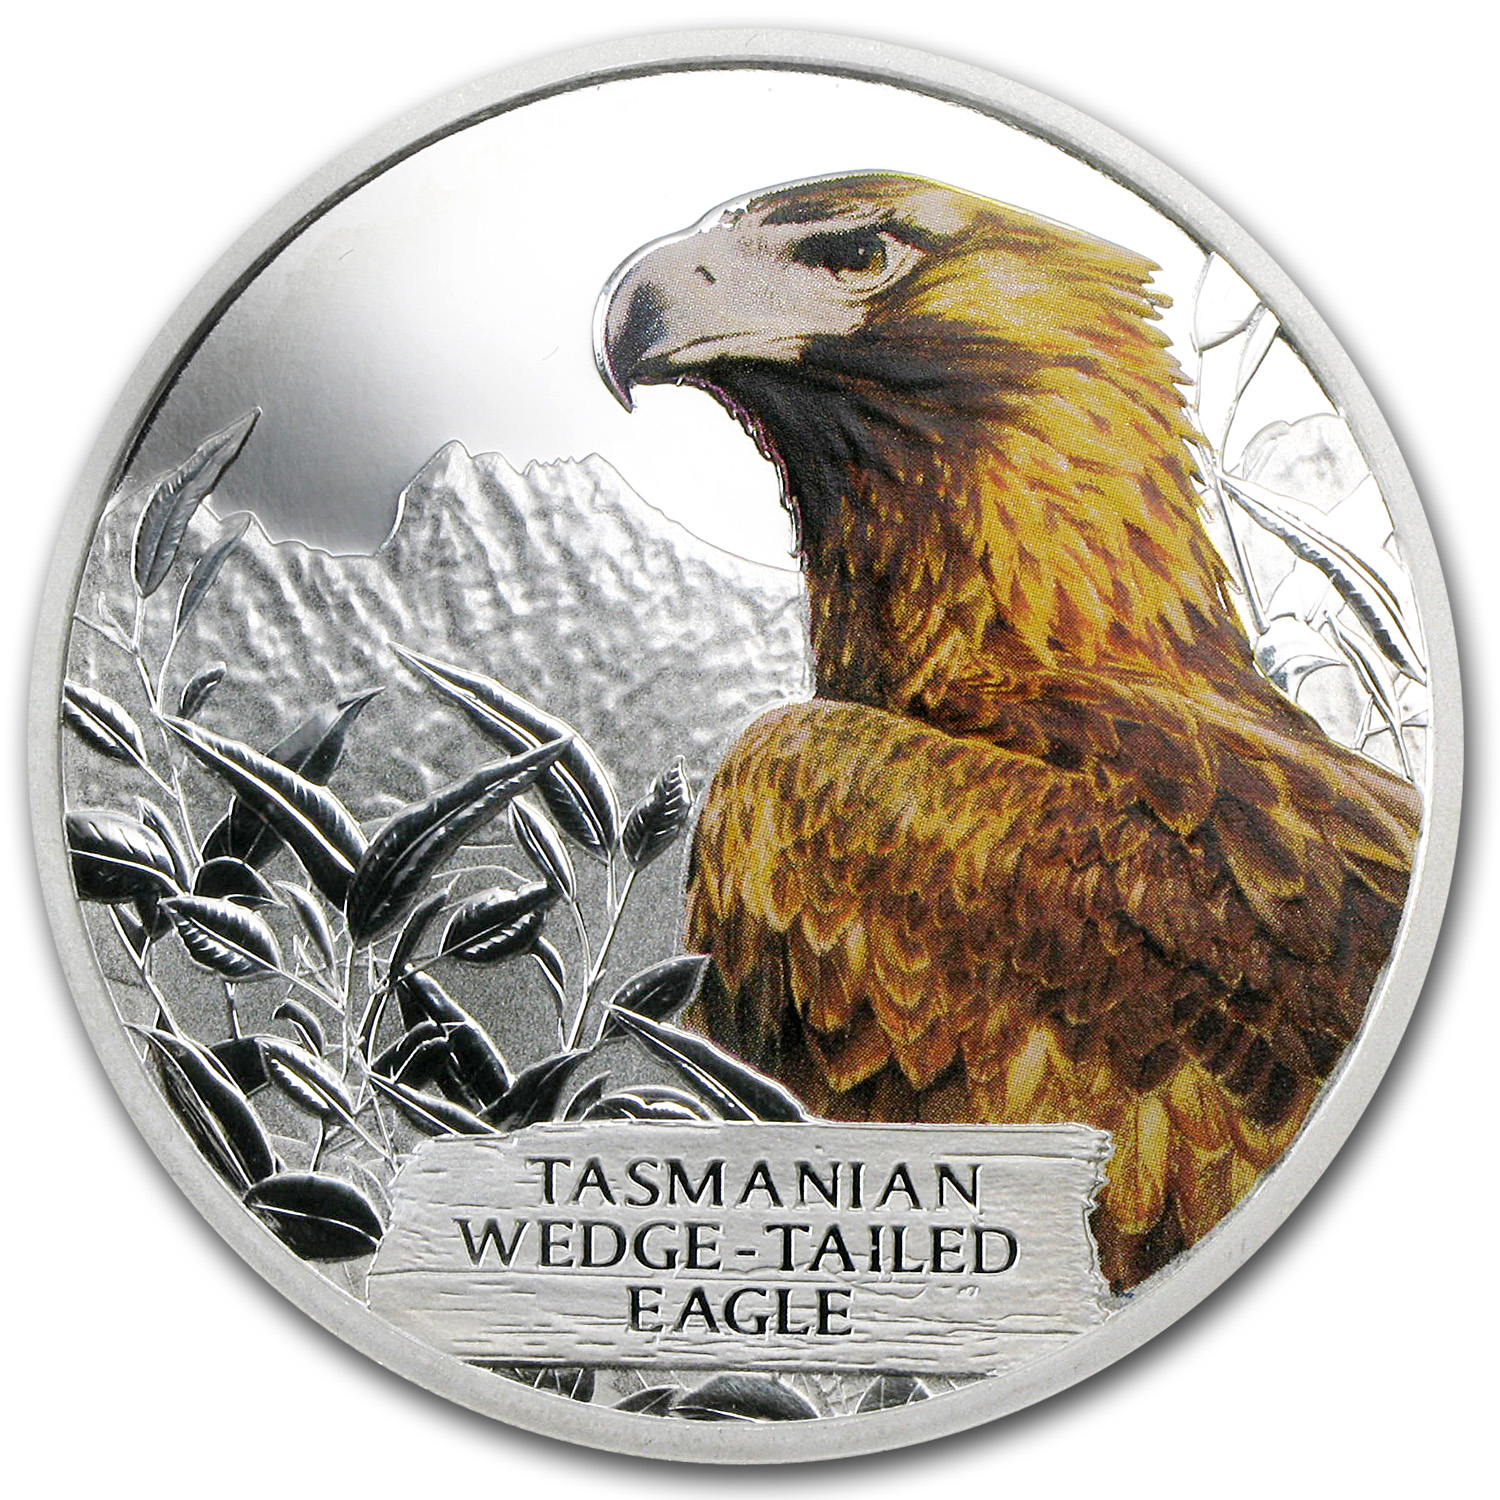 2012 1 oz Silver Tuvalu Wedge-Tailed Eagle Proof